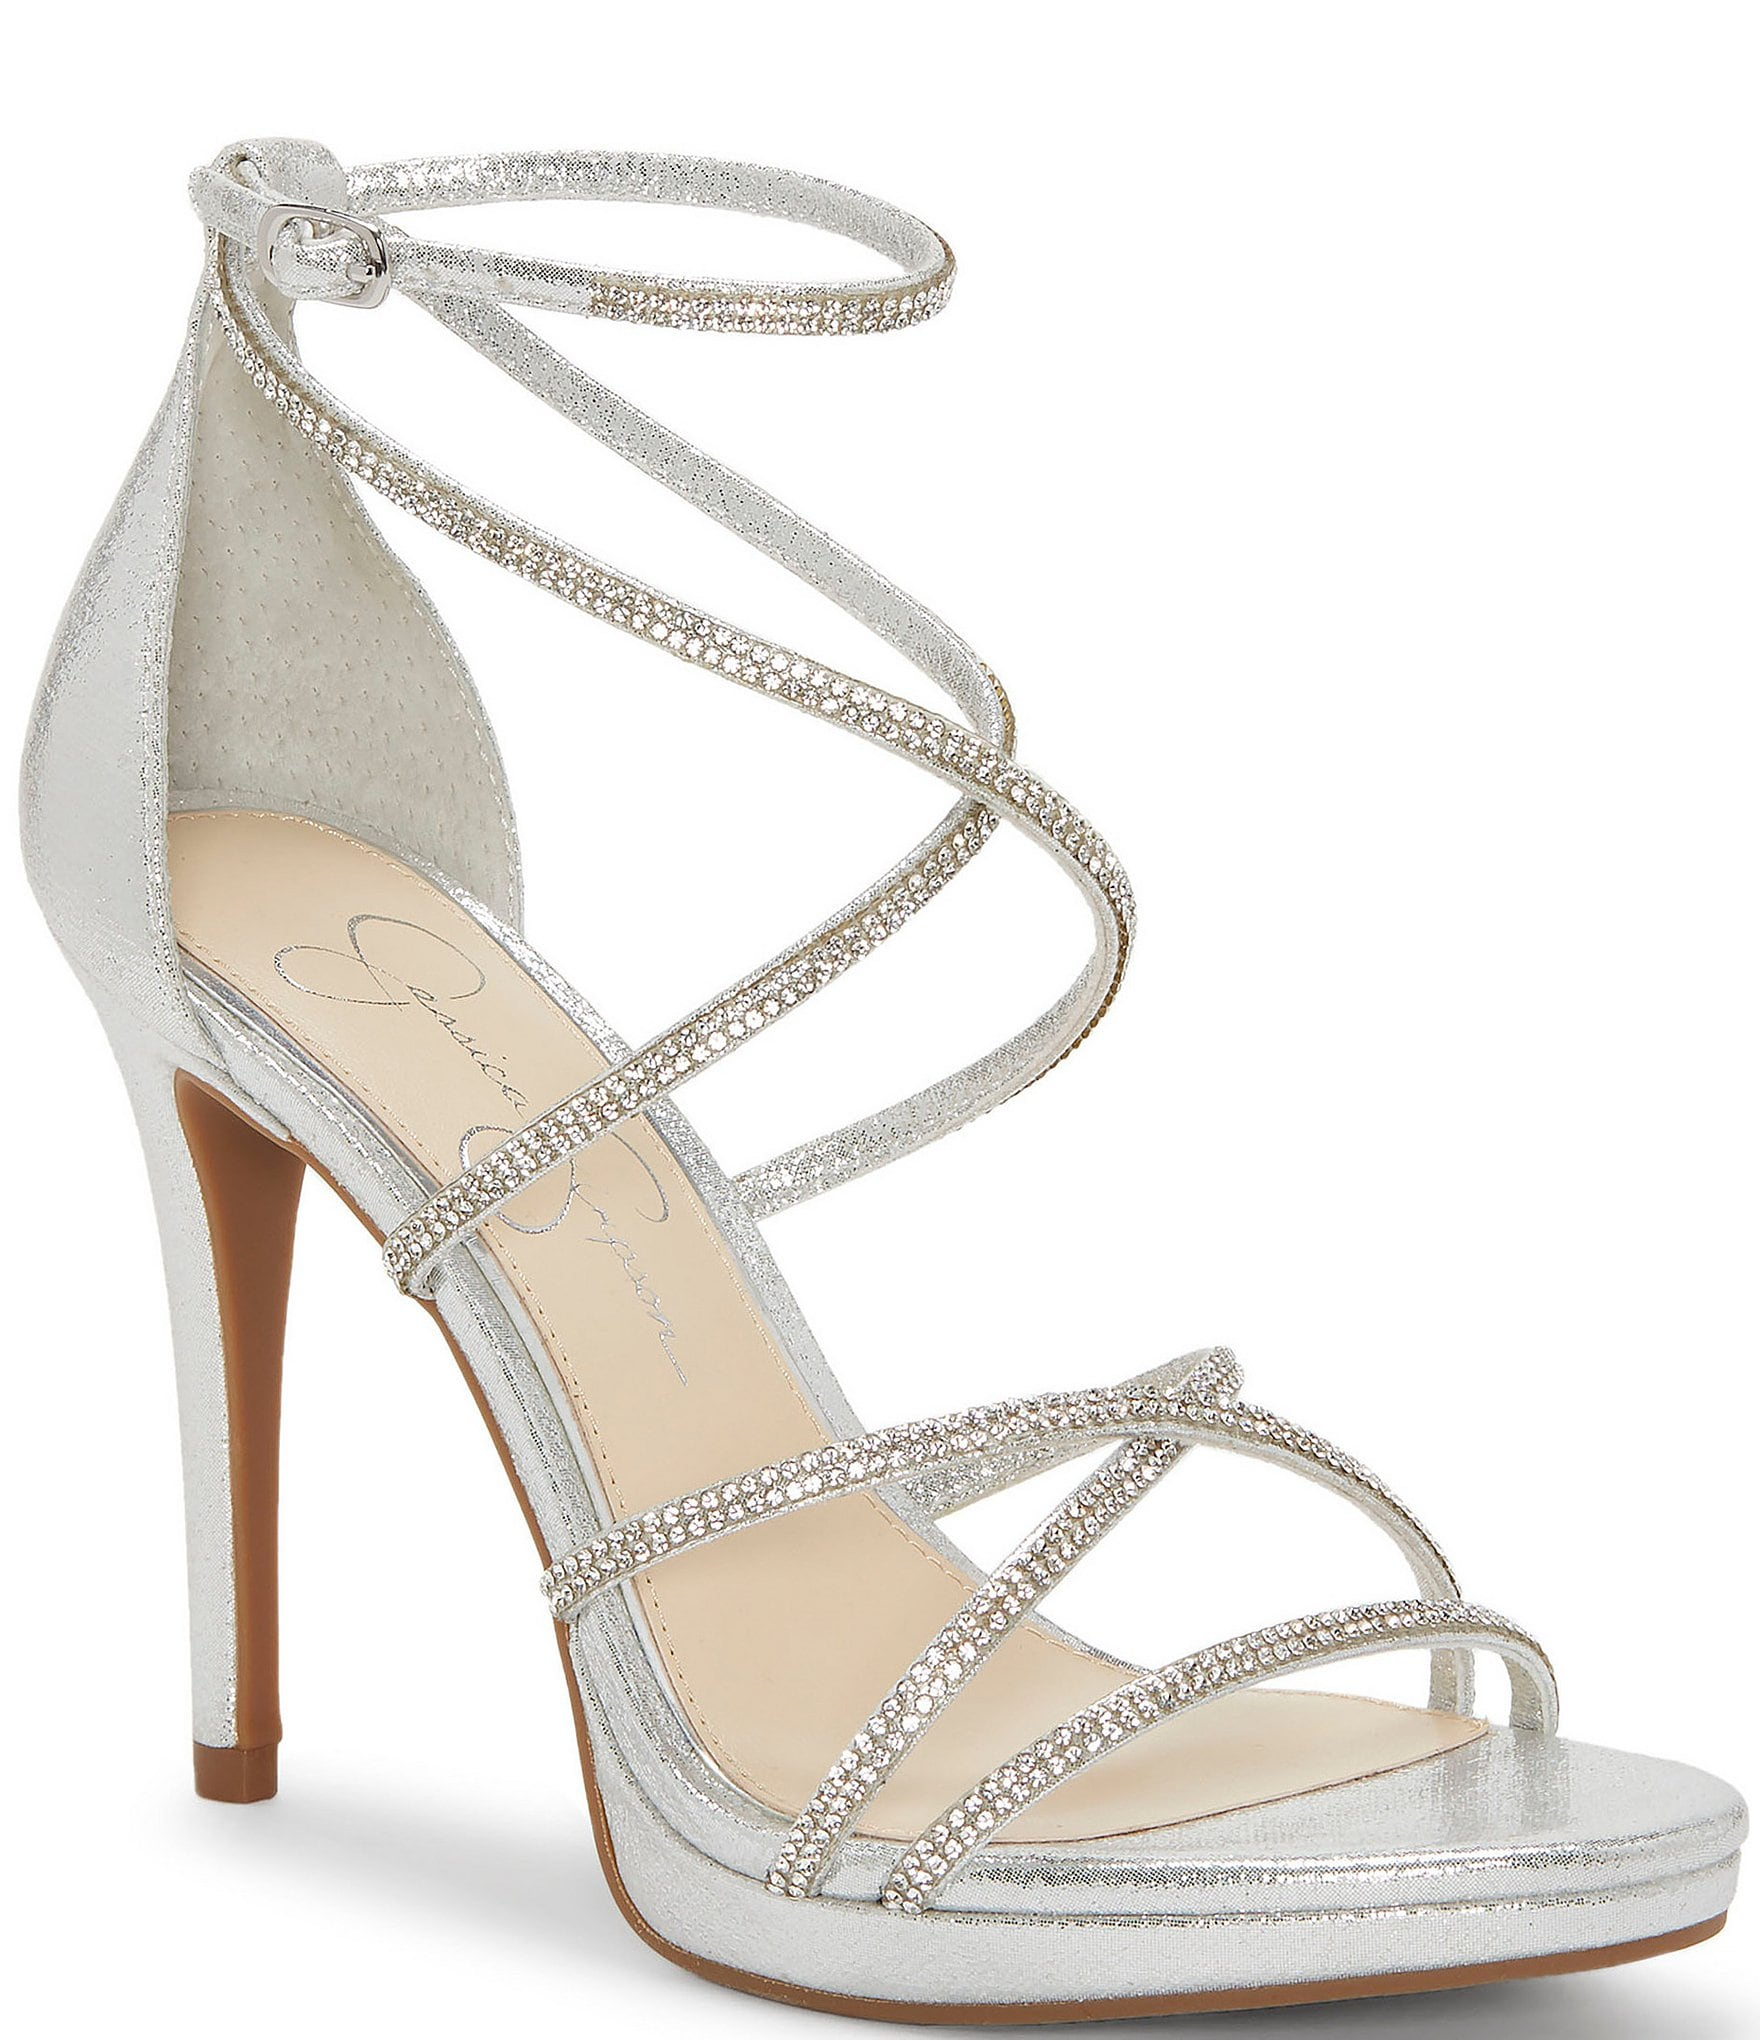 9ae3ccc6a08 Jessica Simpson Women s Extended Size Shoes